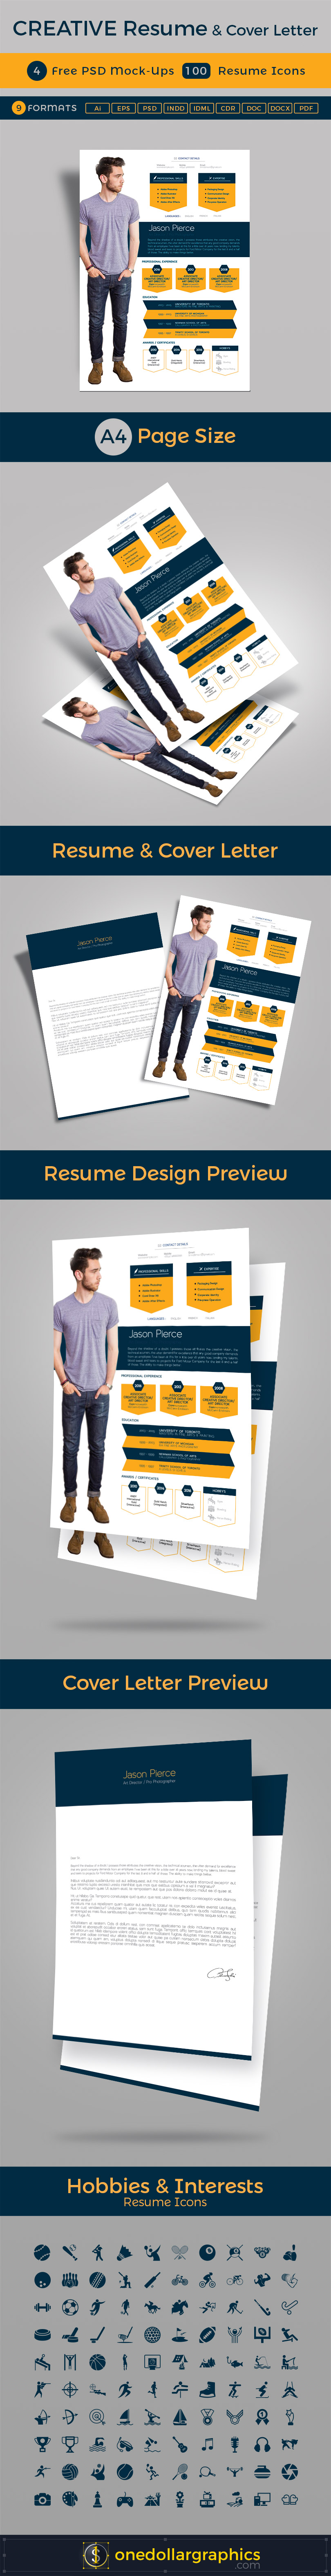 Creative-Resume-CV-Design-Cover-Letter-Template,-PSD-Icons-2